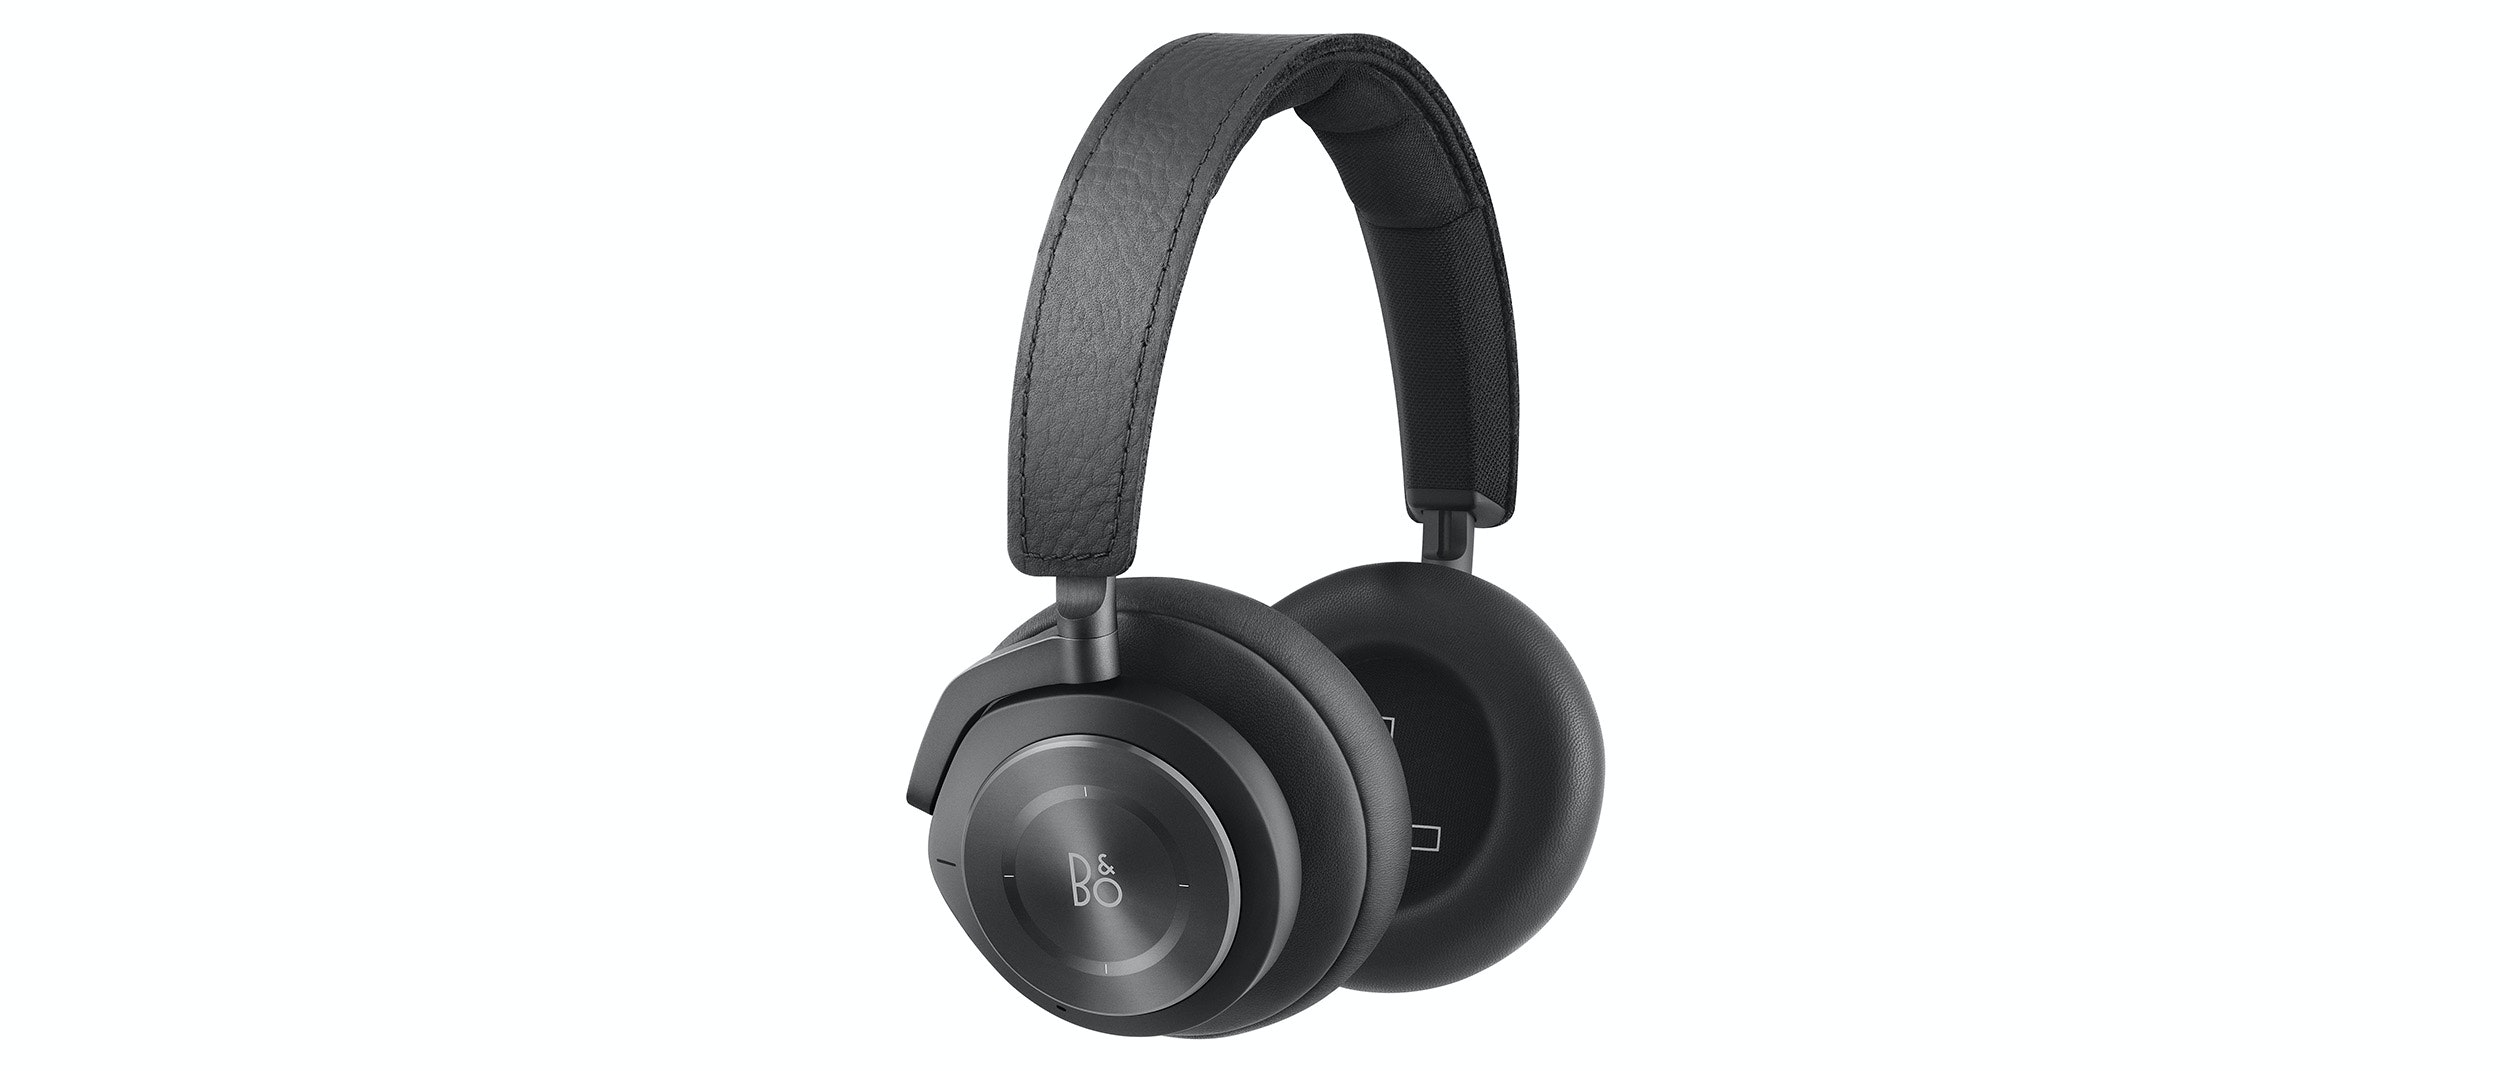 Beoplay H9i - wireless over-ear headphones with ANC